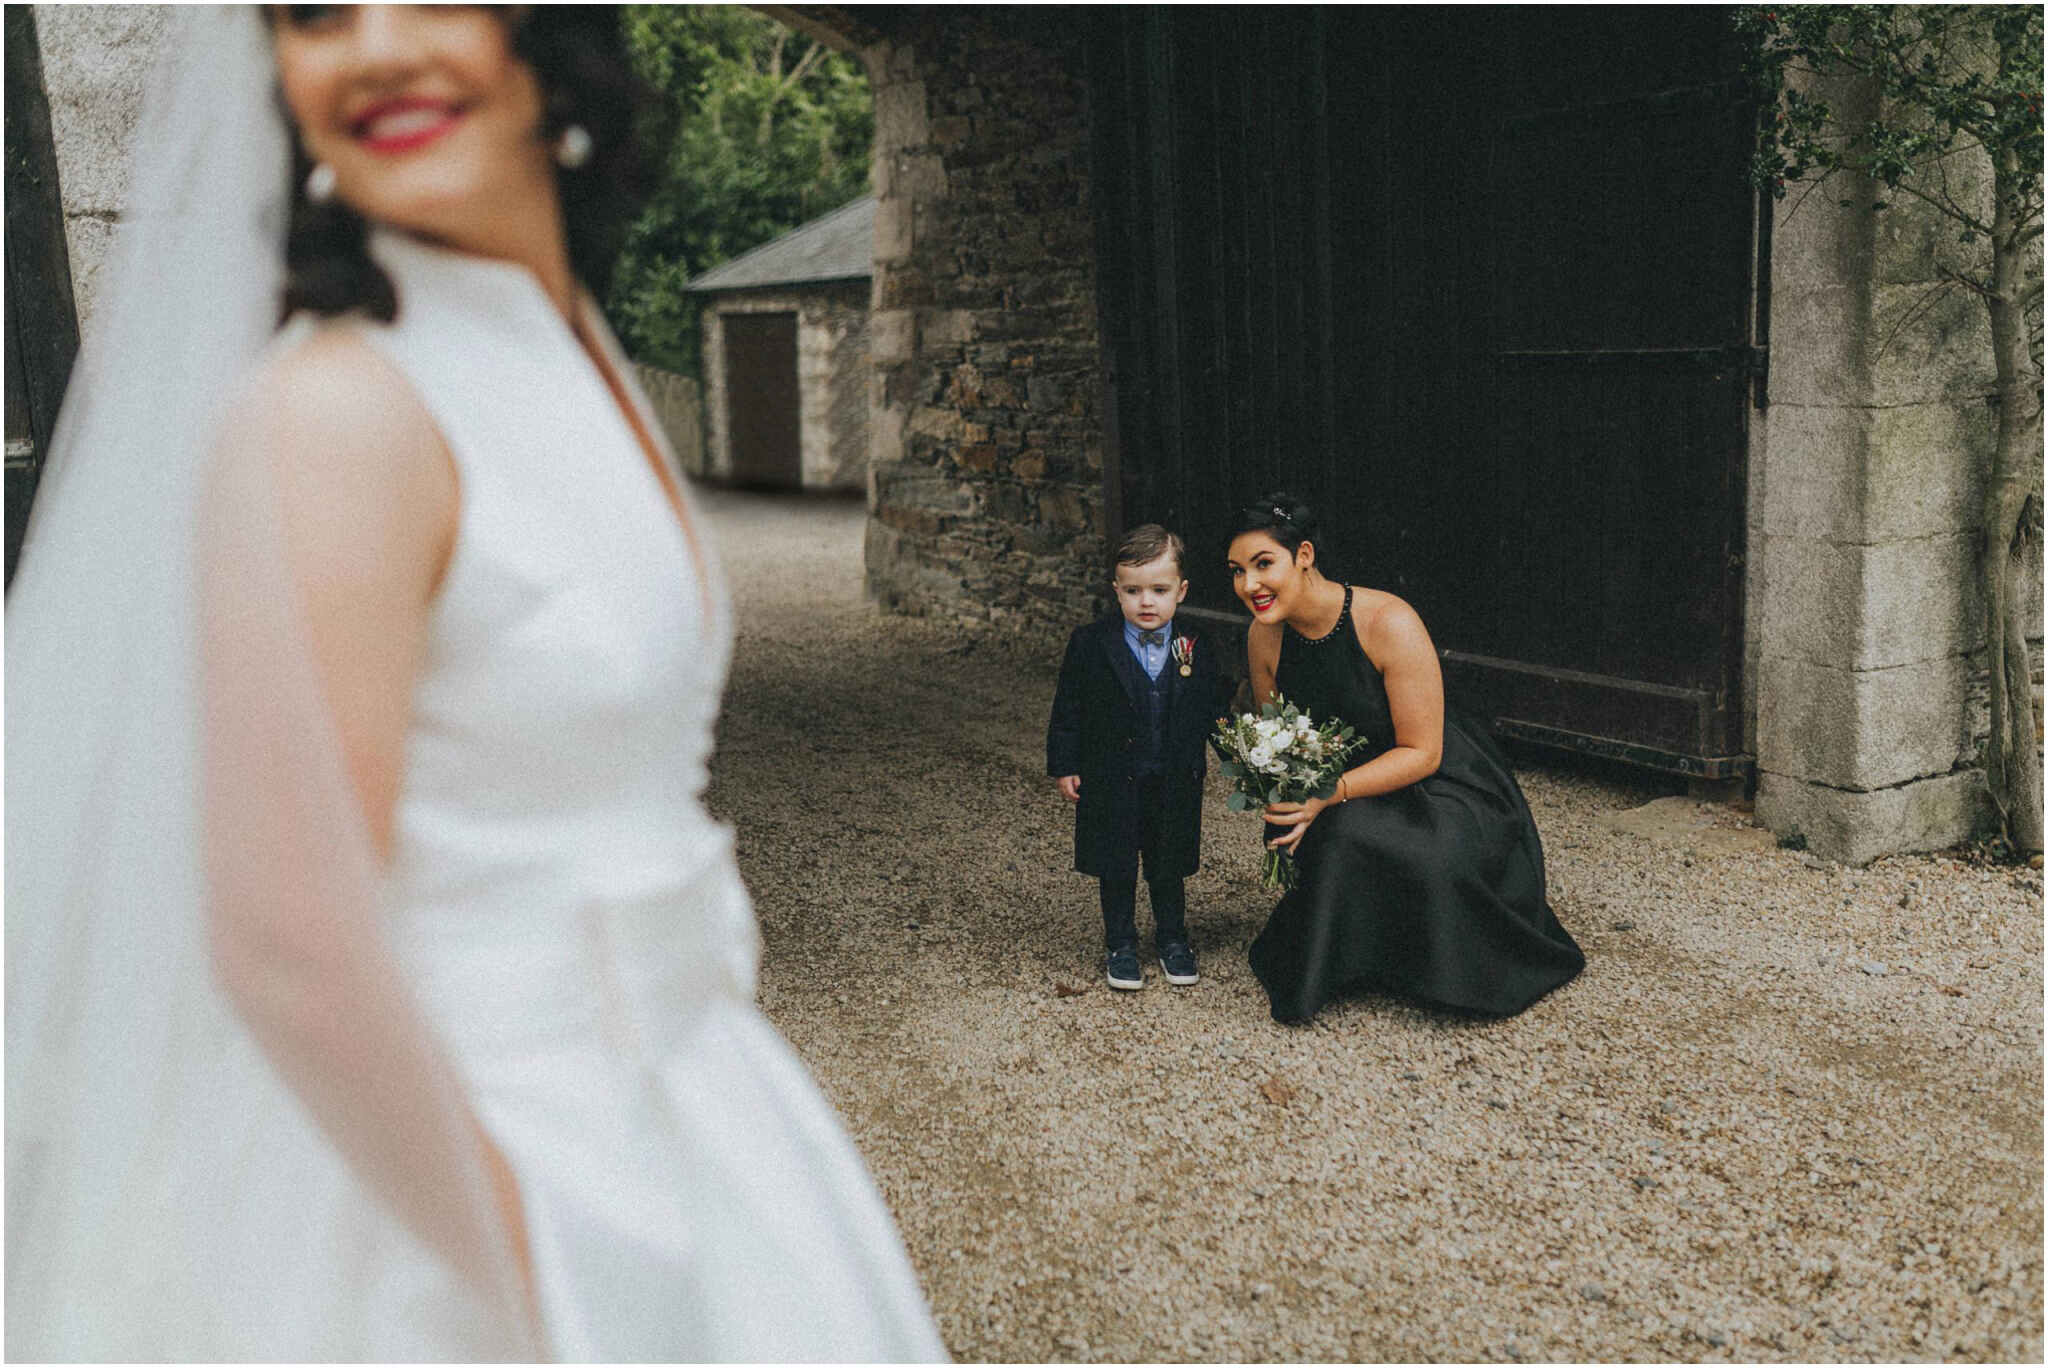 Ballybeg house wicklow fun relaxed wedding00066 1 - Fun and Relaxed wedding and elopement photography in Ireland, perfect for adventurous and outdoorsy couples